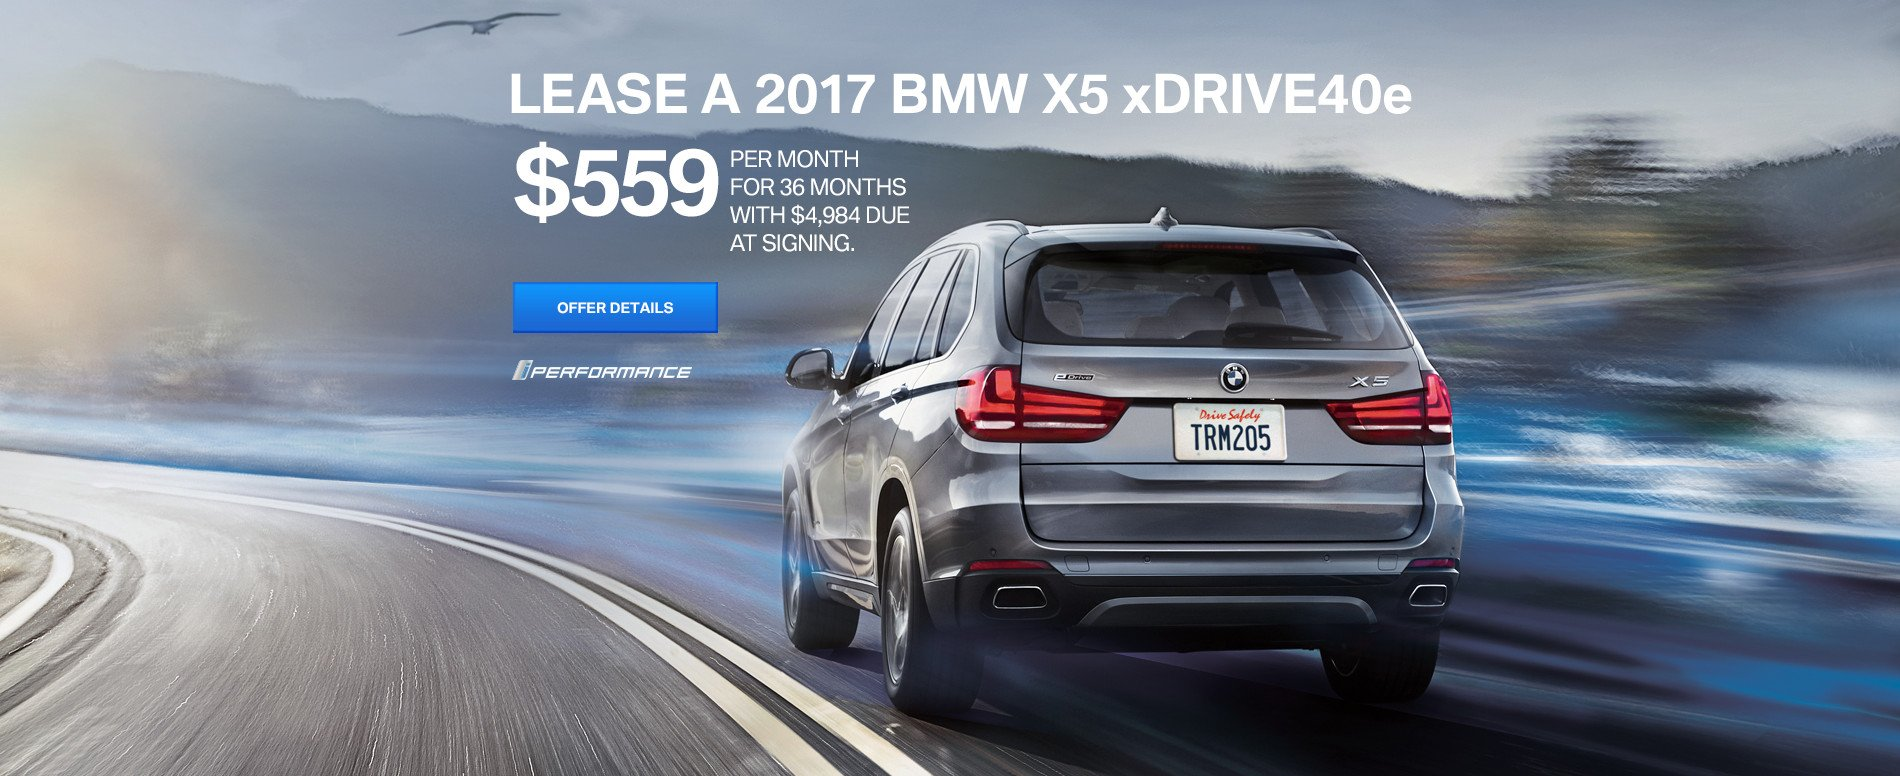 X5 xDrive40e Lease for $559/mo for 36 months